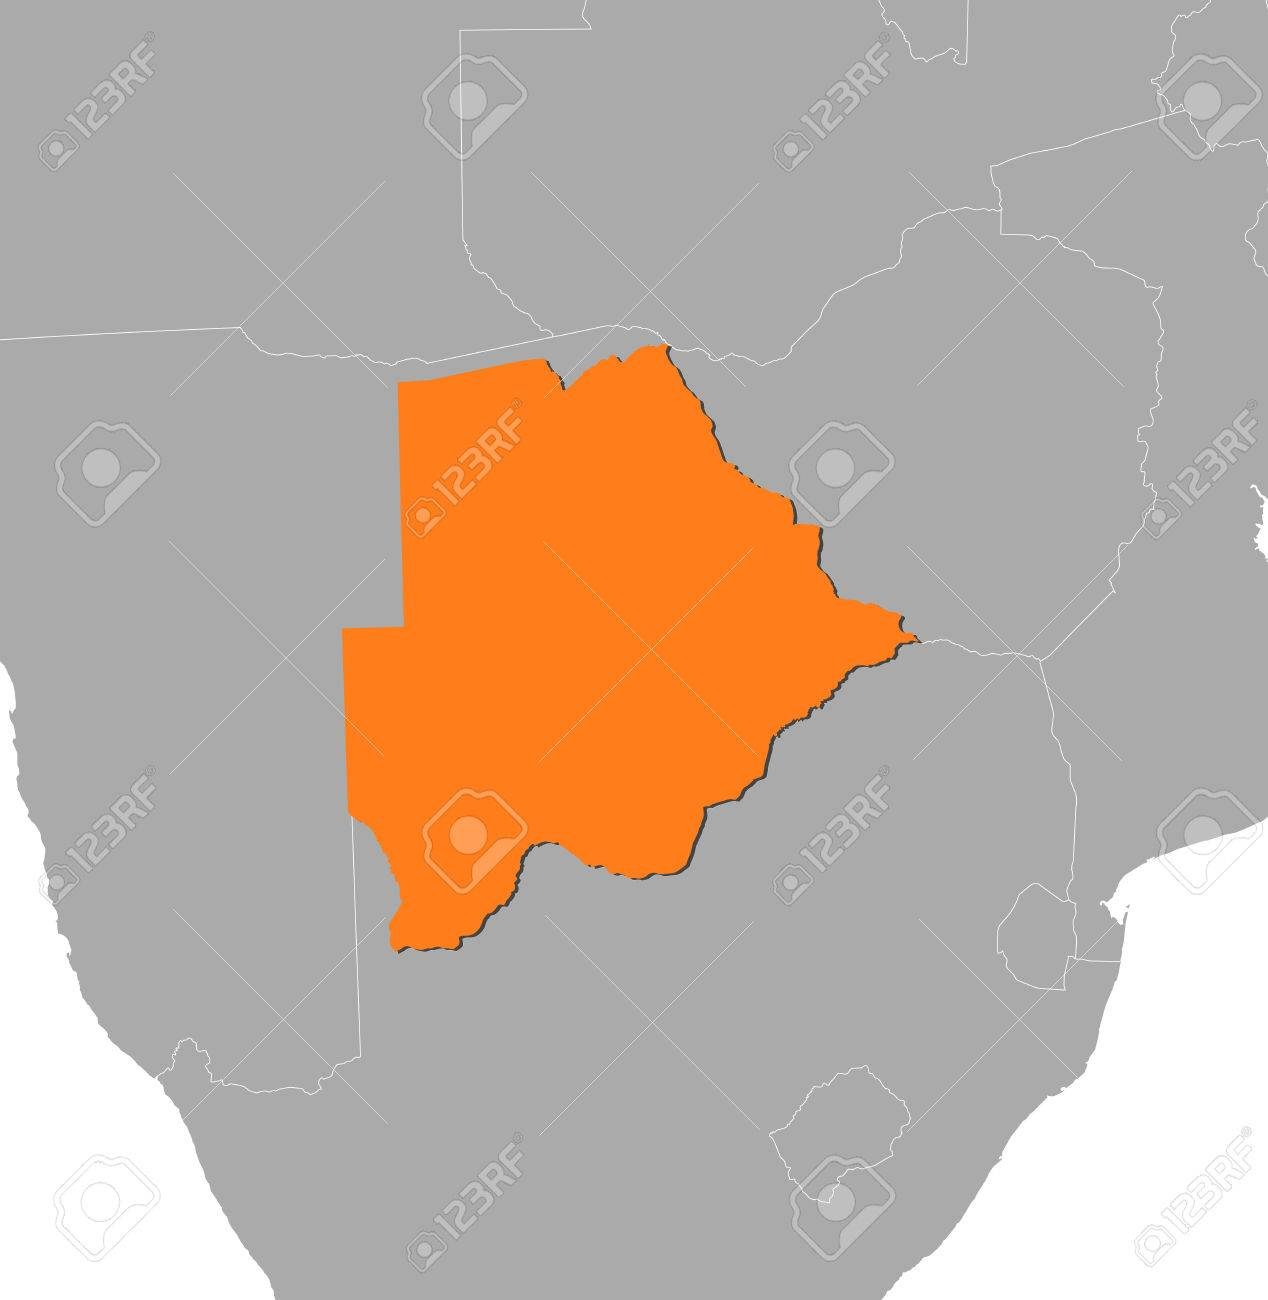 Map of botswana and nearby countries botswana is highlighted map of botswana and nearby countries botswana is highlighted in orange stock vector gumiabroncs Image collections